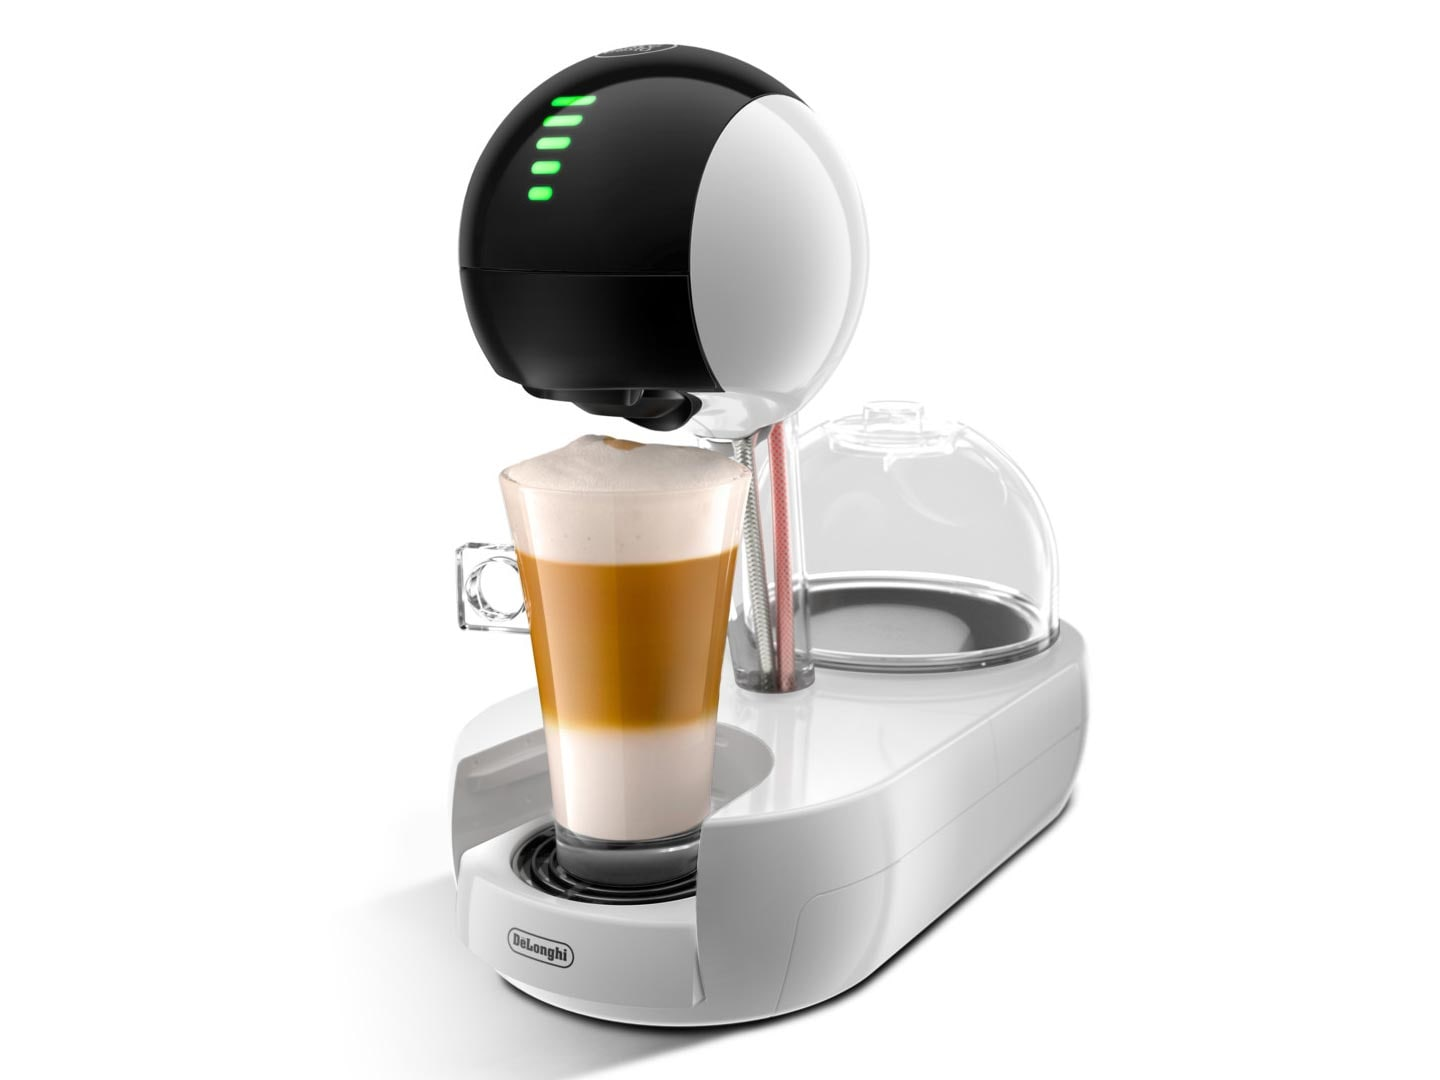 delonghi edg 100 w nescaf dolce gusto piccolo kaffeekapselmaschine manuell wei radio. Black Bedroom Furniture Sets. Home Design Ideas